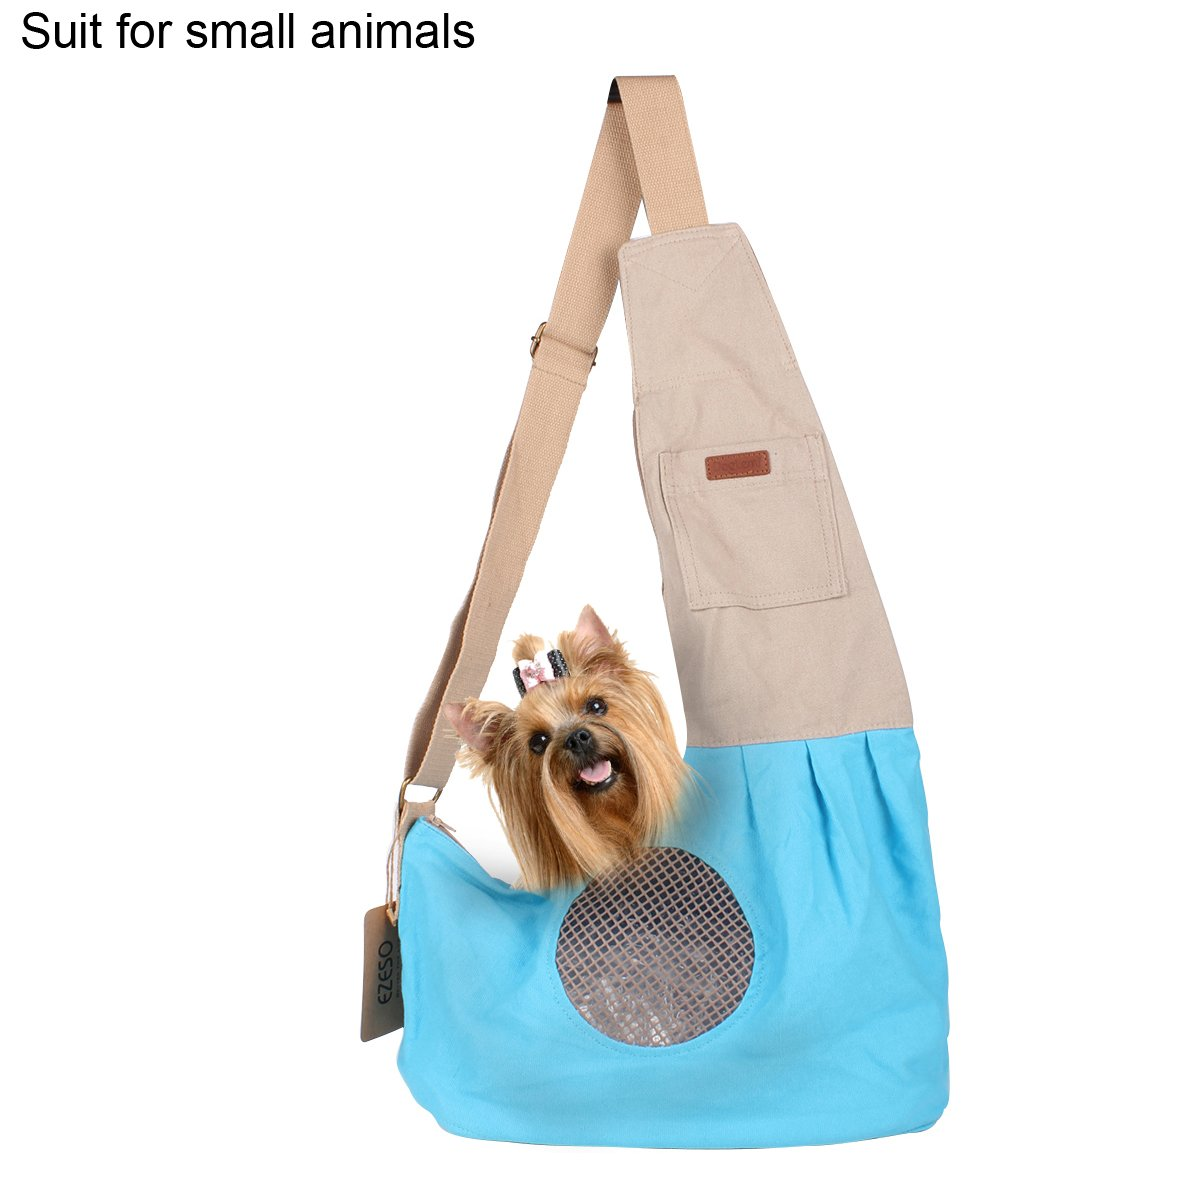 Ezeso Pet Dog Cat Sling Carrier Bag Shoulder Hands Free Adjustable Carry Bag with Extra Pocket for Puppy Small Animals (Blue)